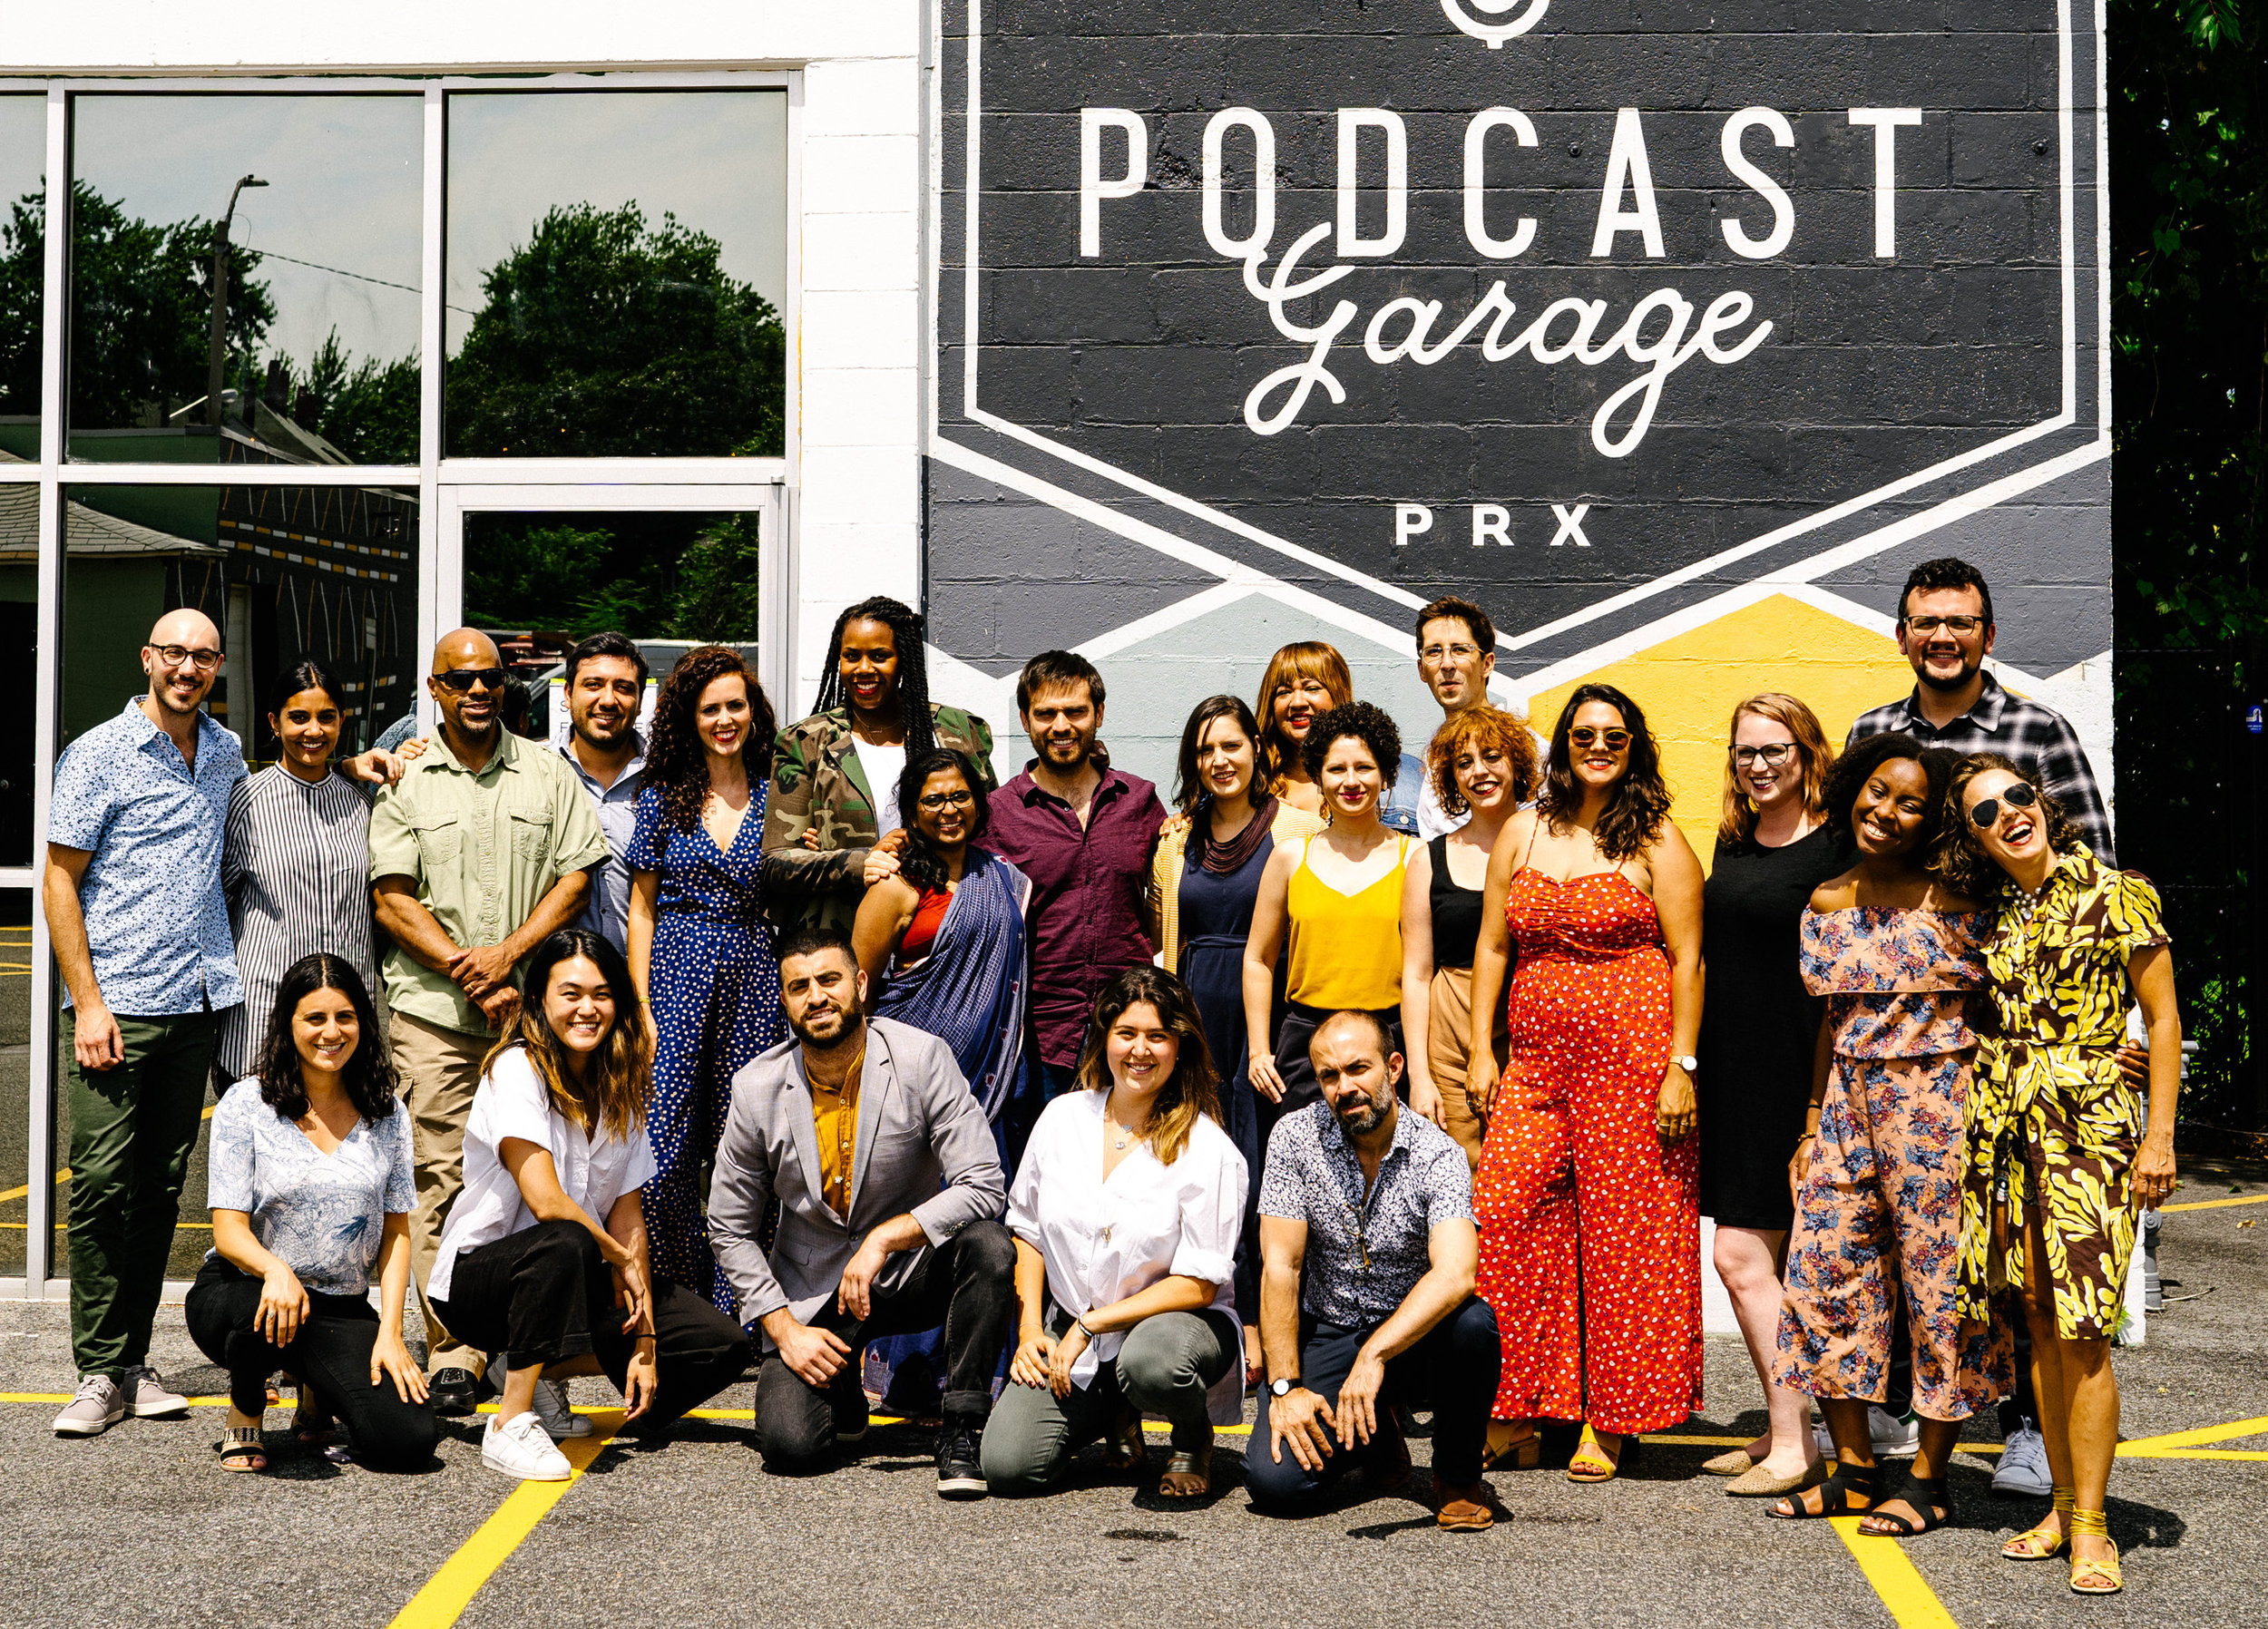 PRX Blog - 19 PODCASTERS, 6 COUNTRIES, 5 DAYS AND 1 INTENSIVE TRAINING WEEKAUG 19, 2019